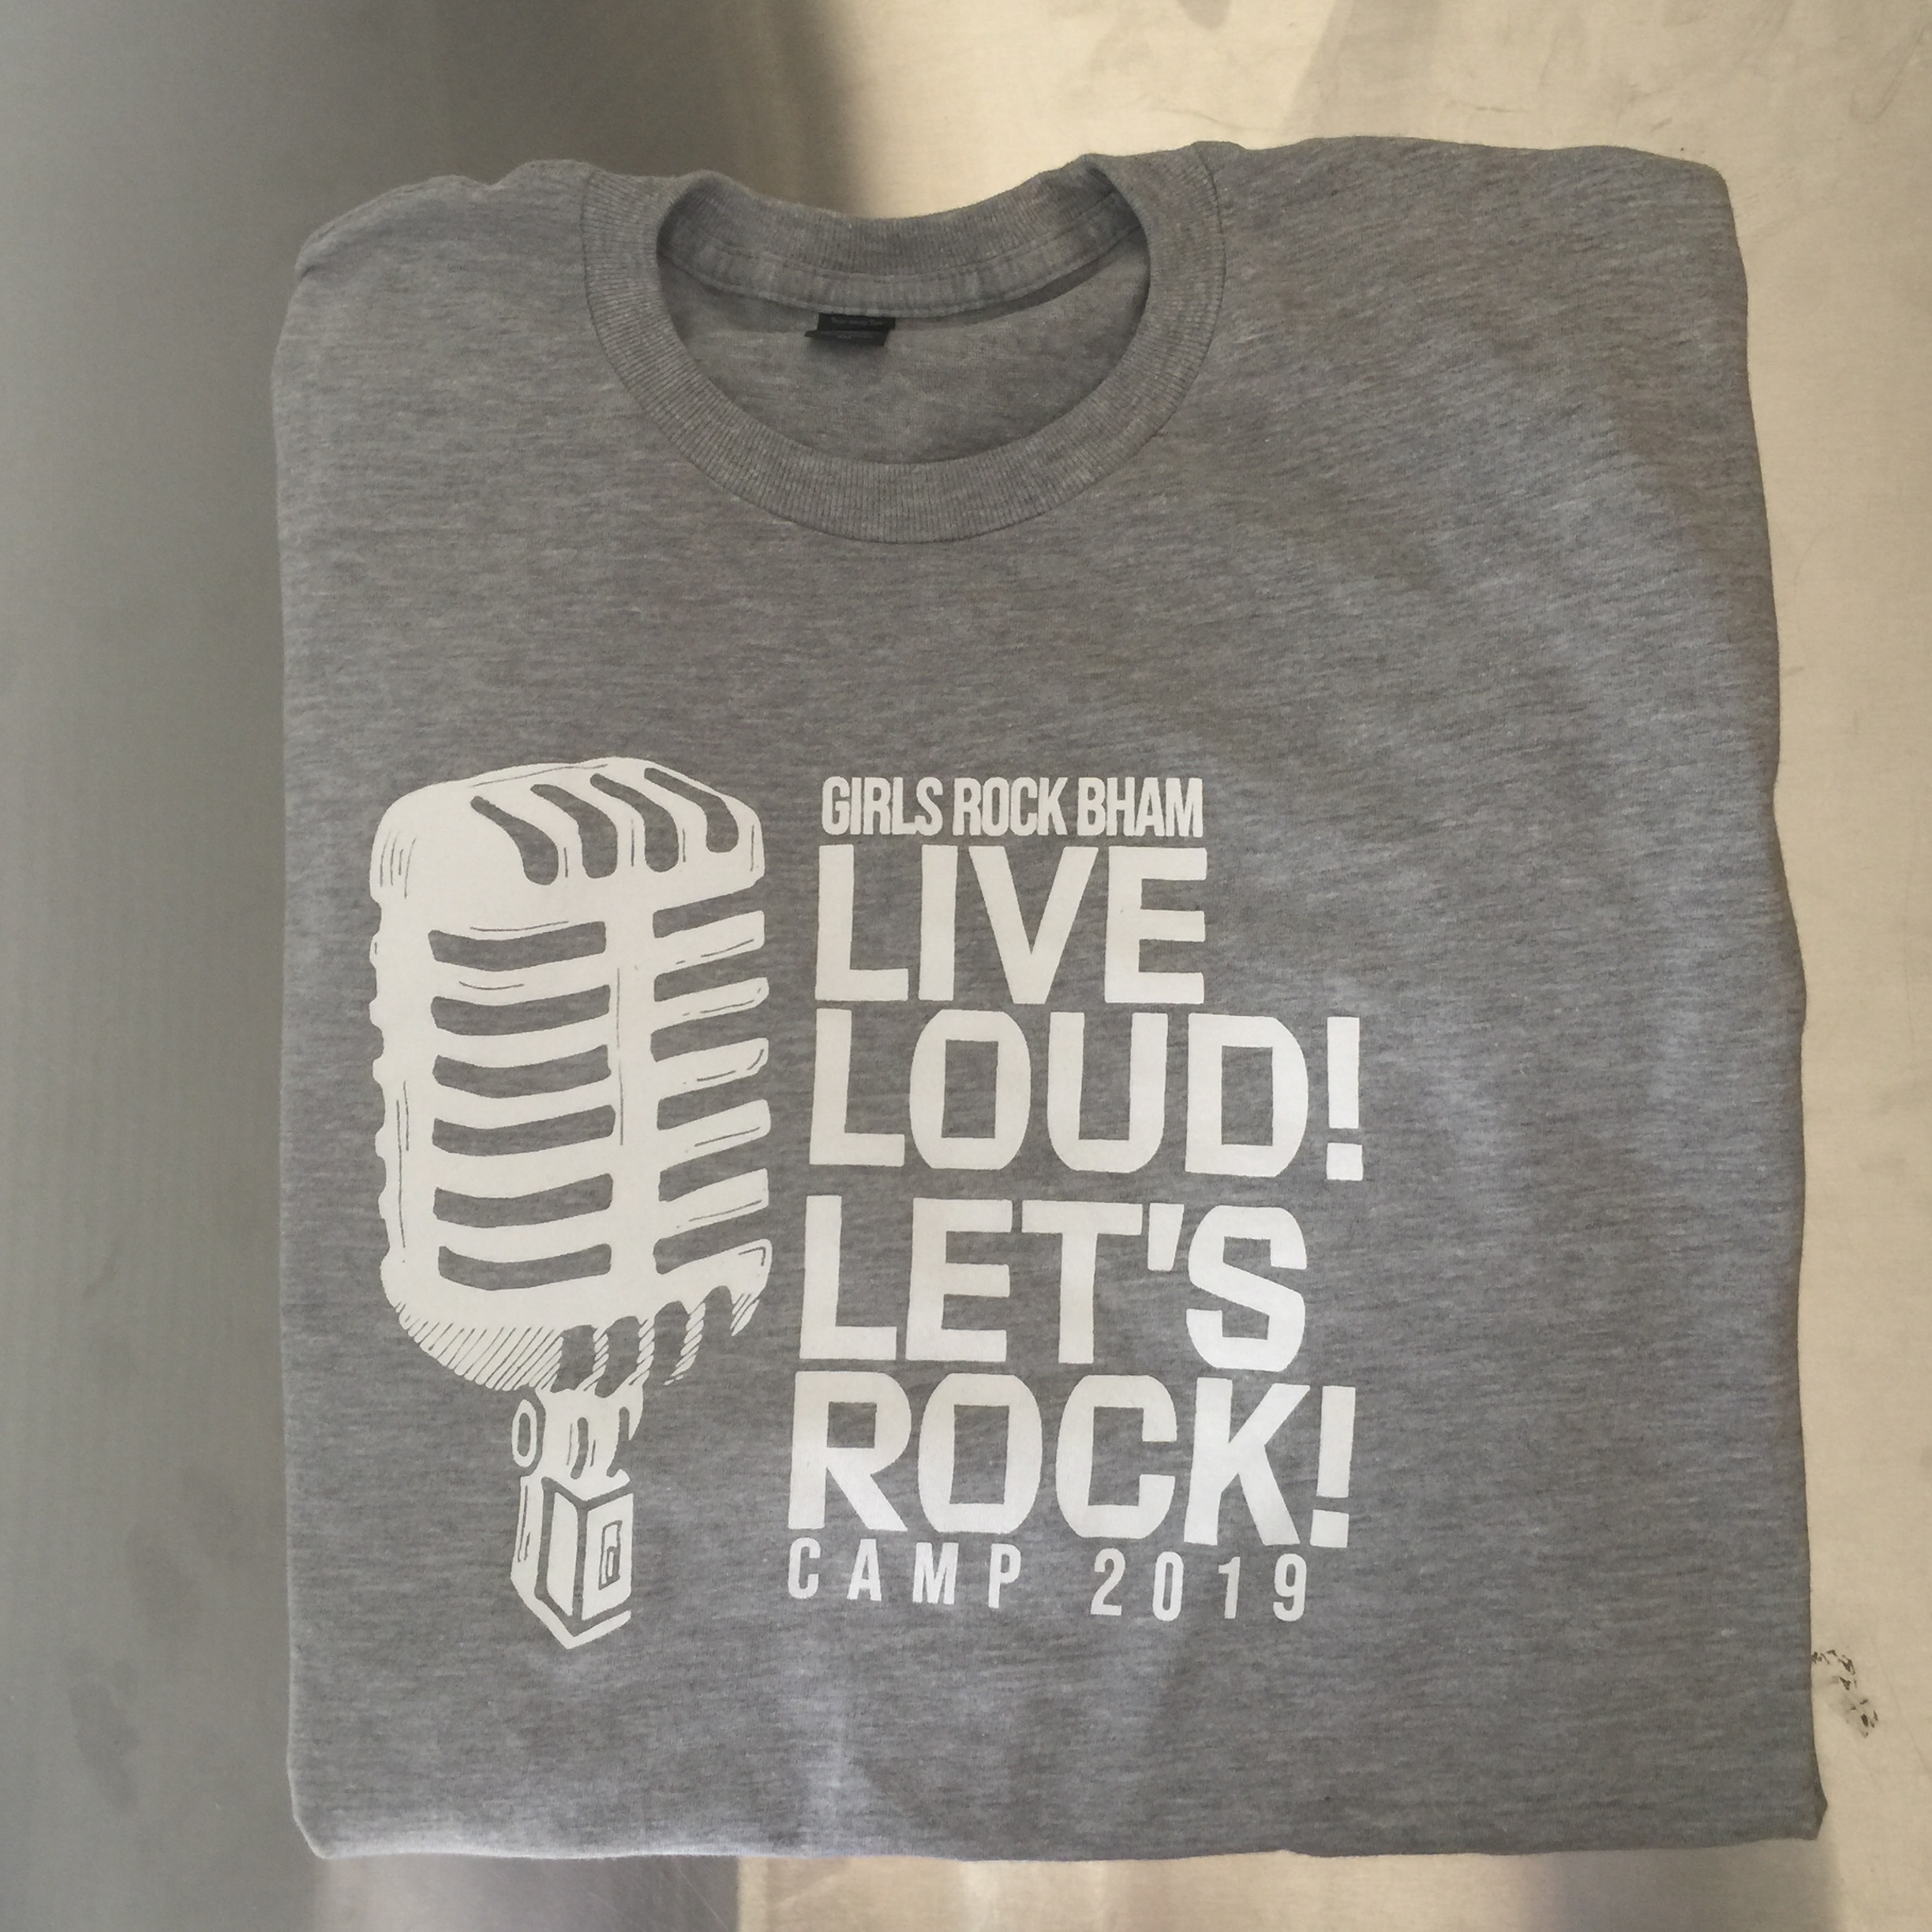 T-shirts for the Girls Rock Bham camp